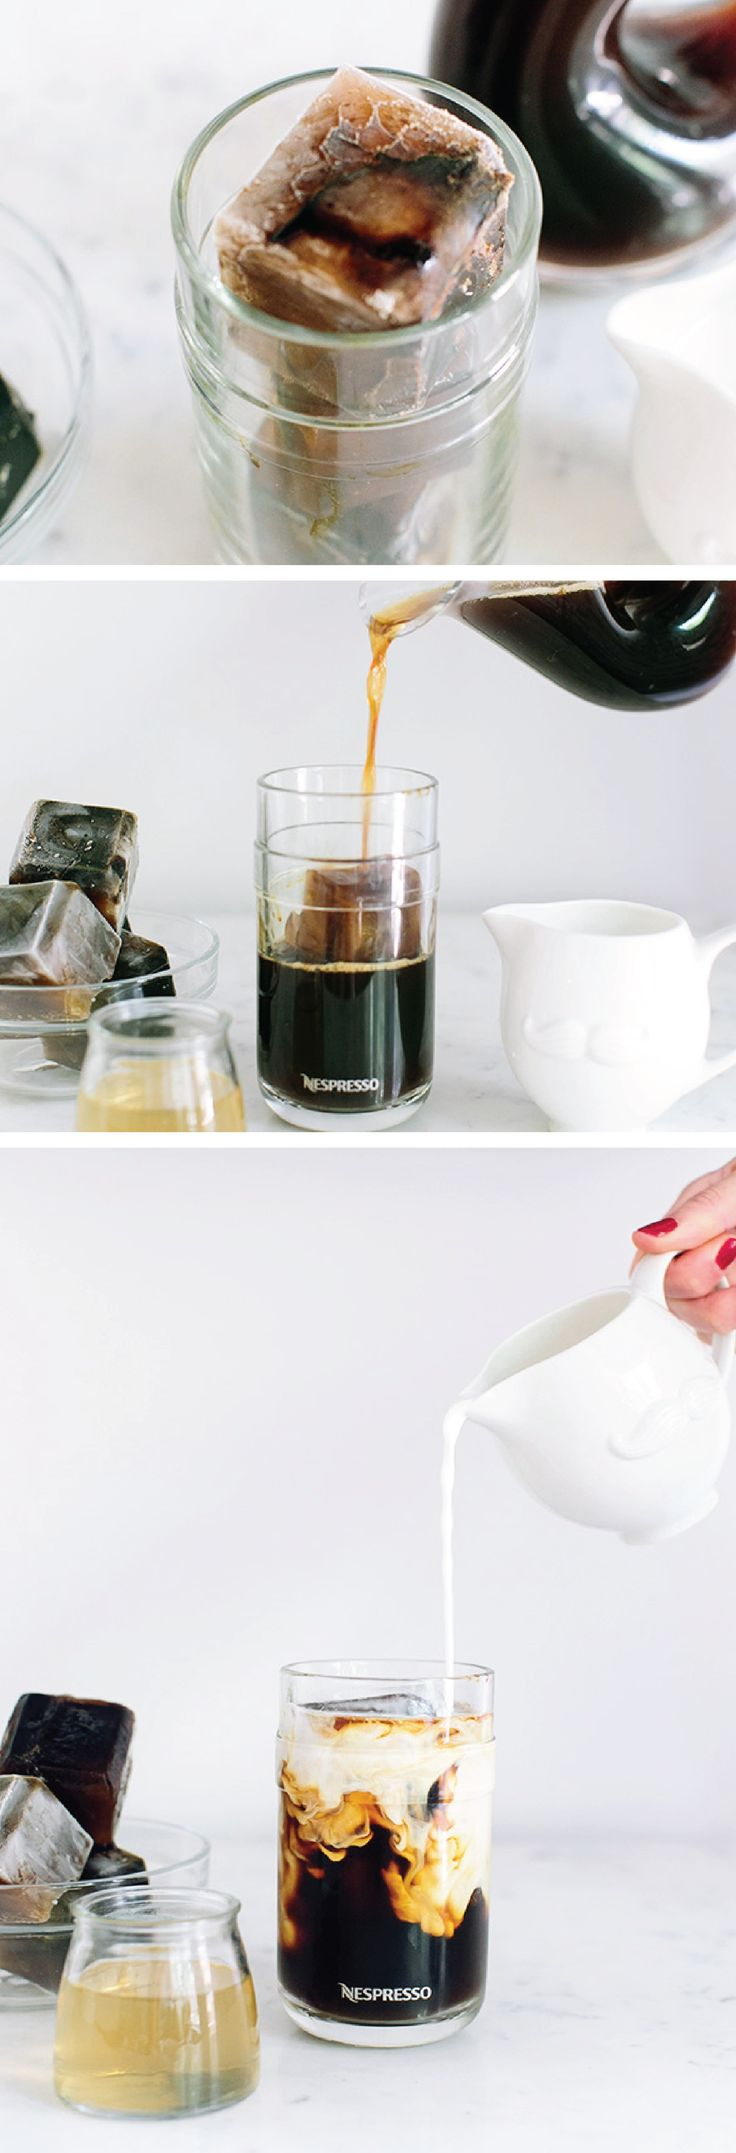 This weekend, try something new with Nespresso. This Caramel Iced Coffee recipe uses coffee ice cubes—keeping your drink from becoming watered down and ensuring it's delicious from start to finish.